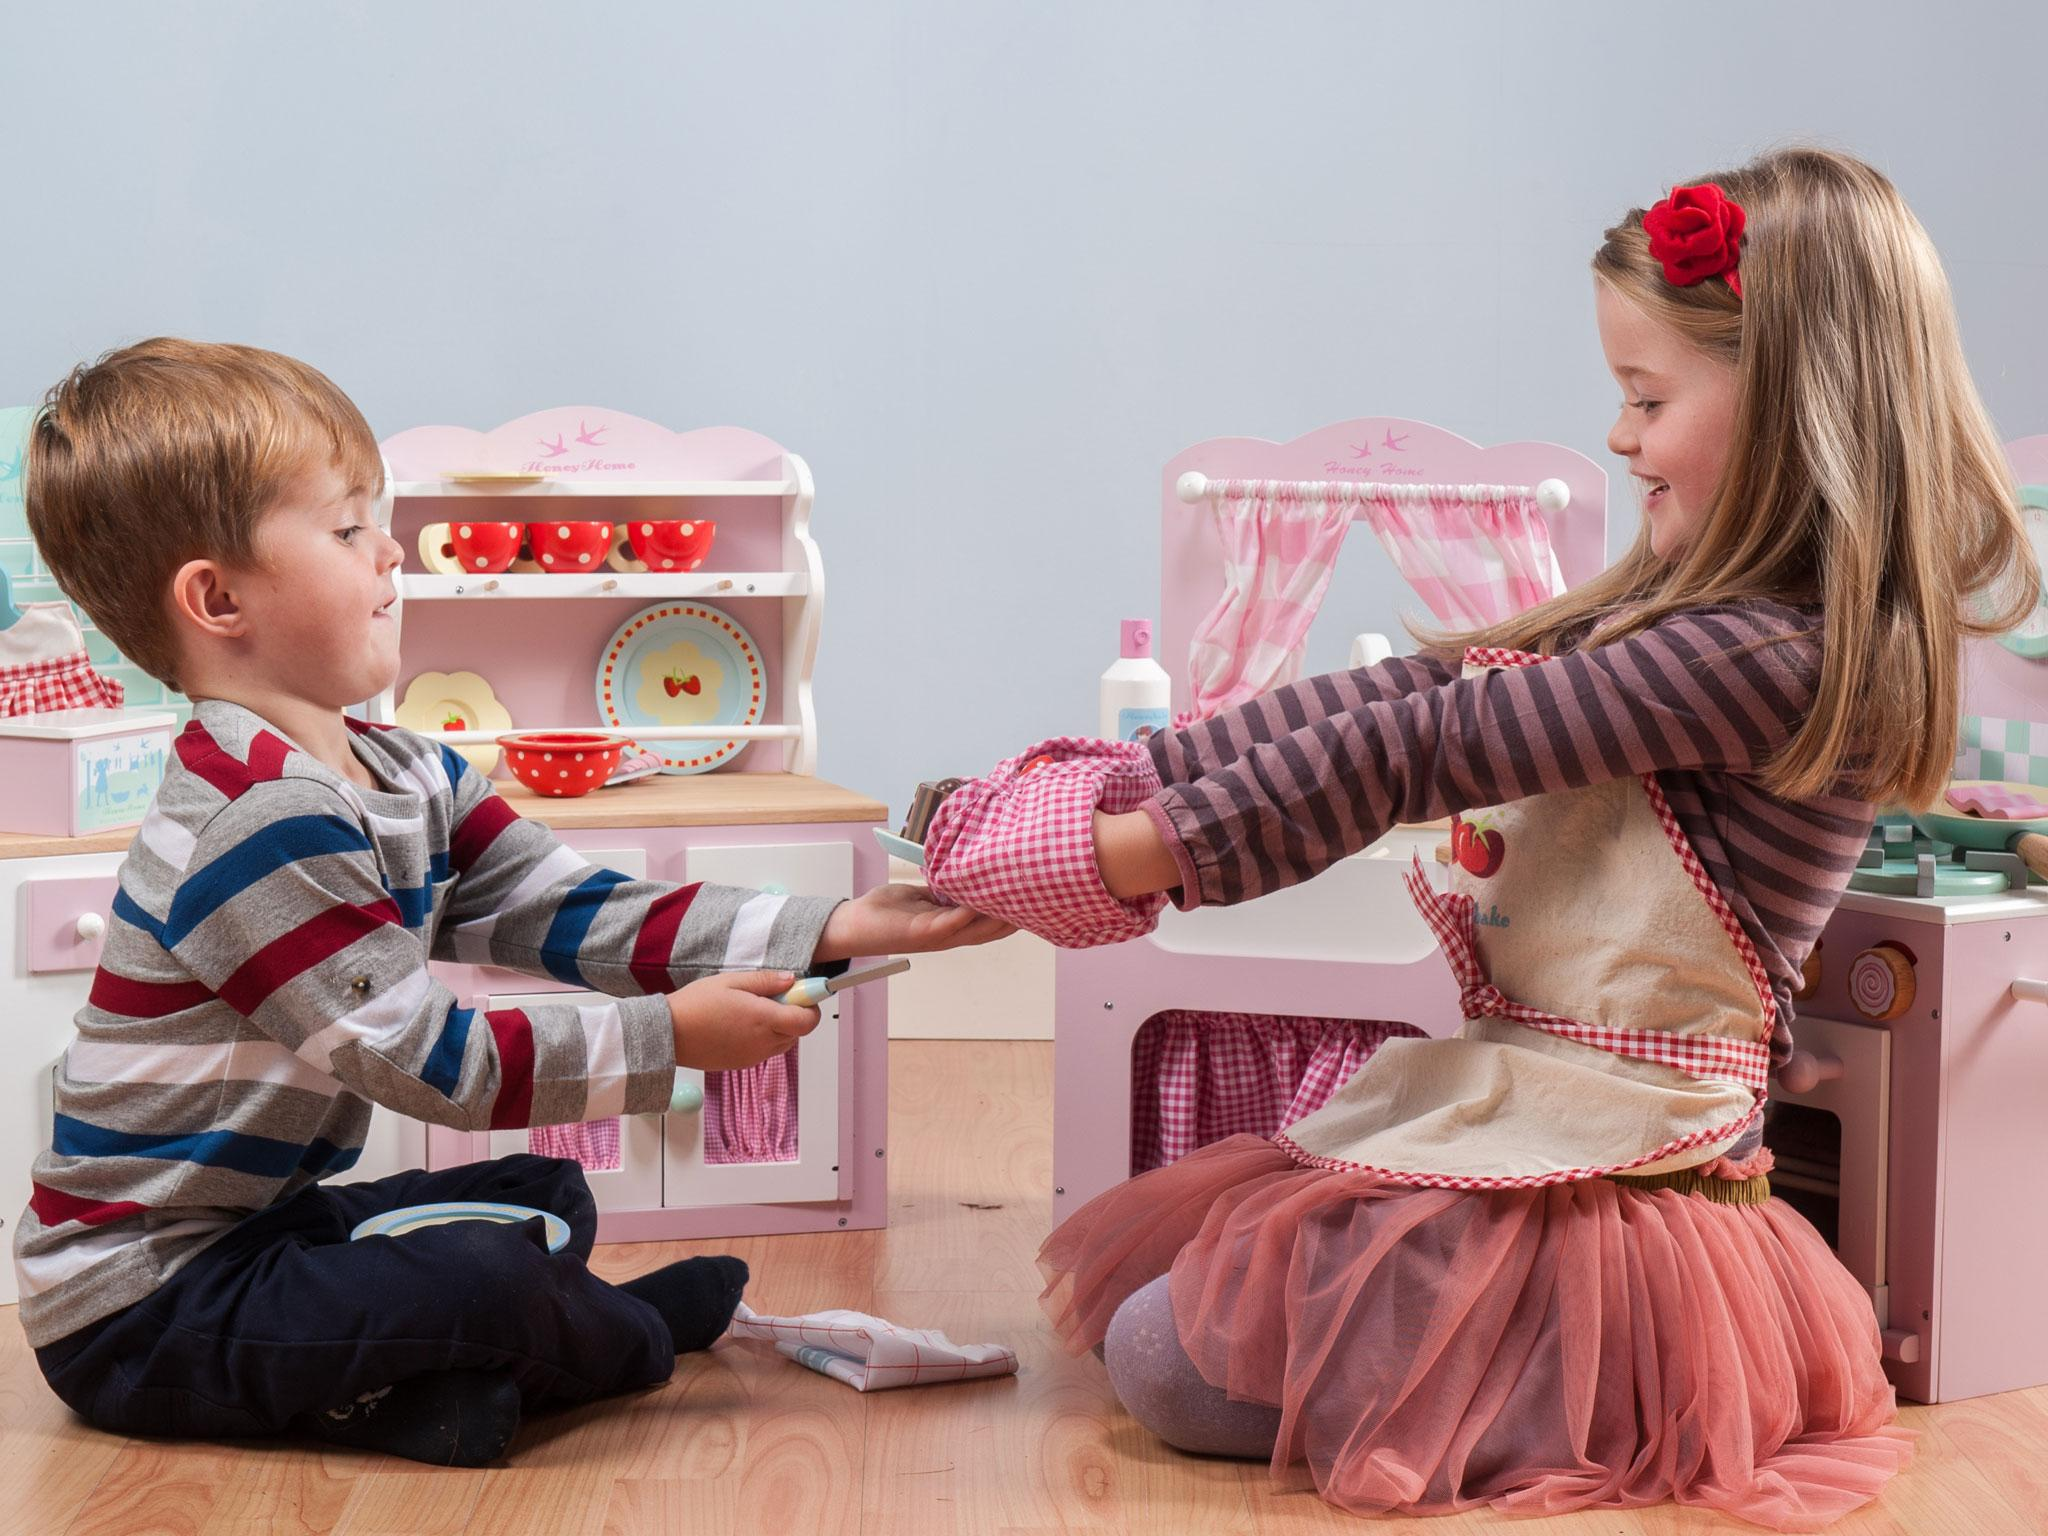 Read More 13 Best Gifts For 2 Year Olds